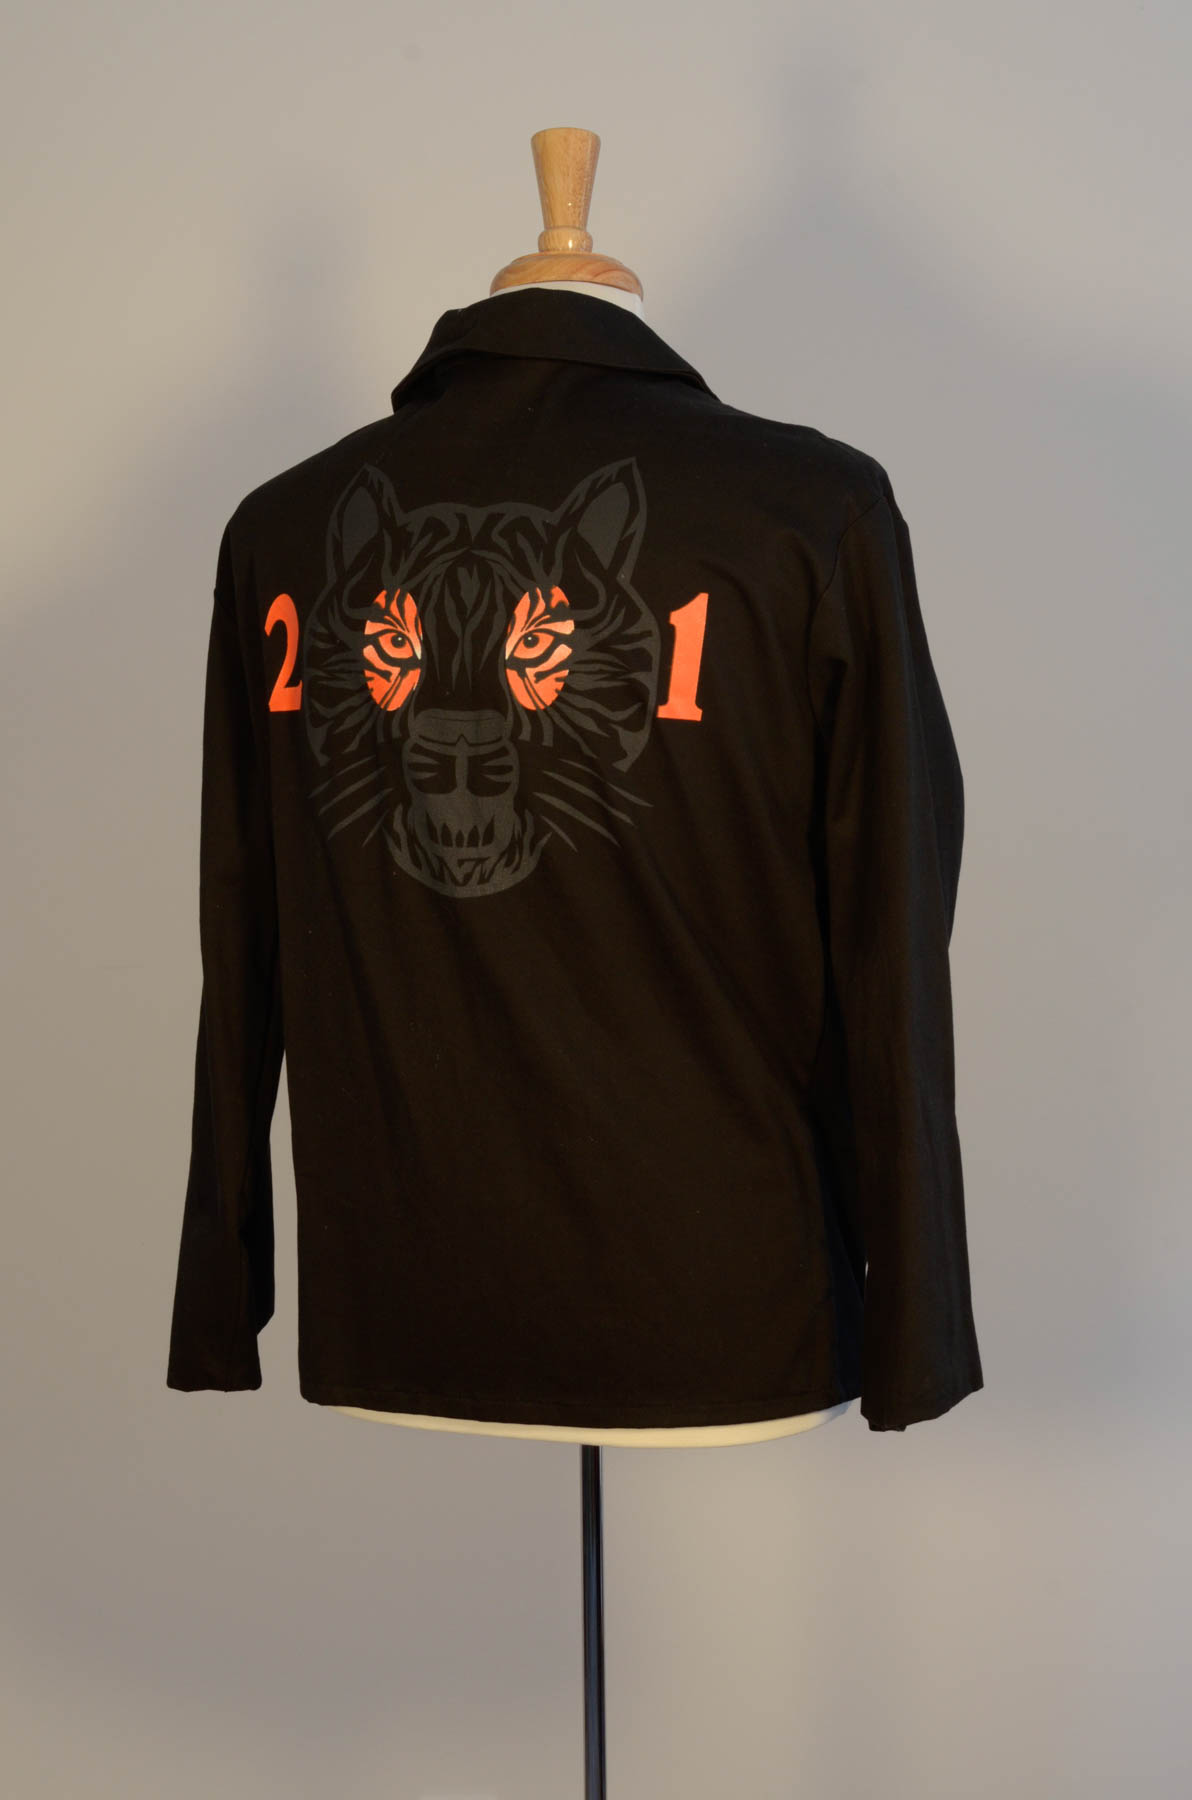 Beer Jacket 2001 Rear